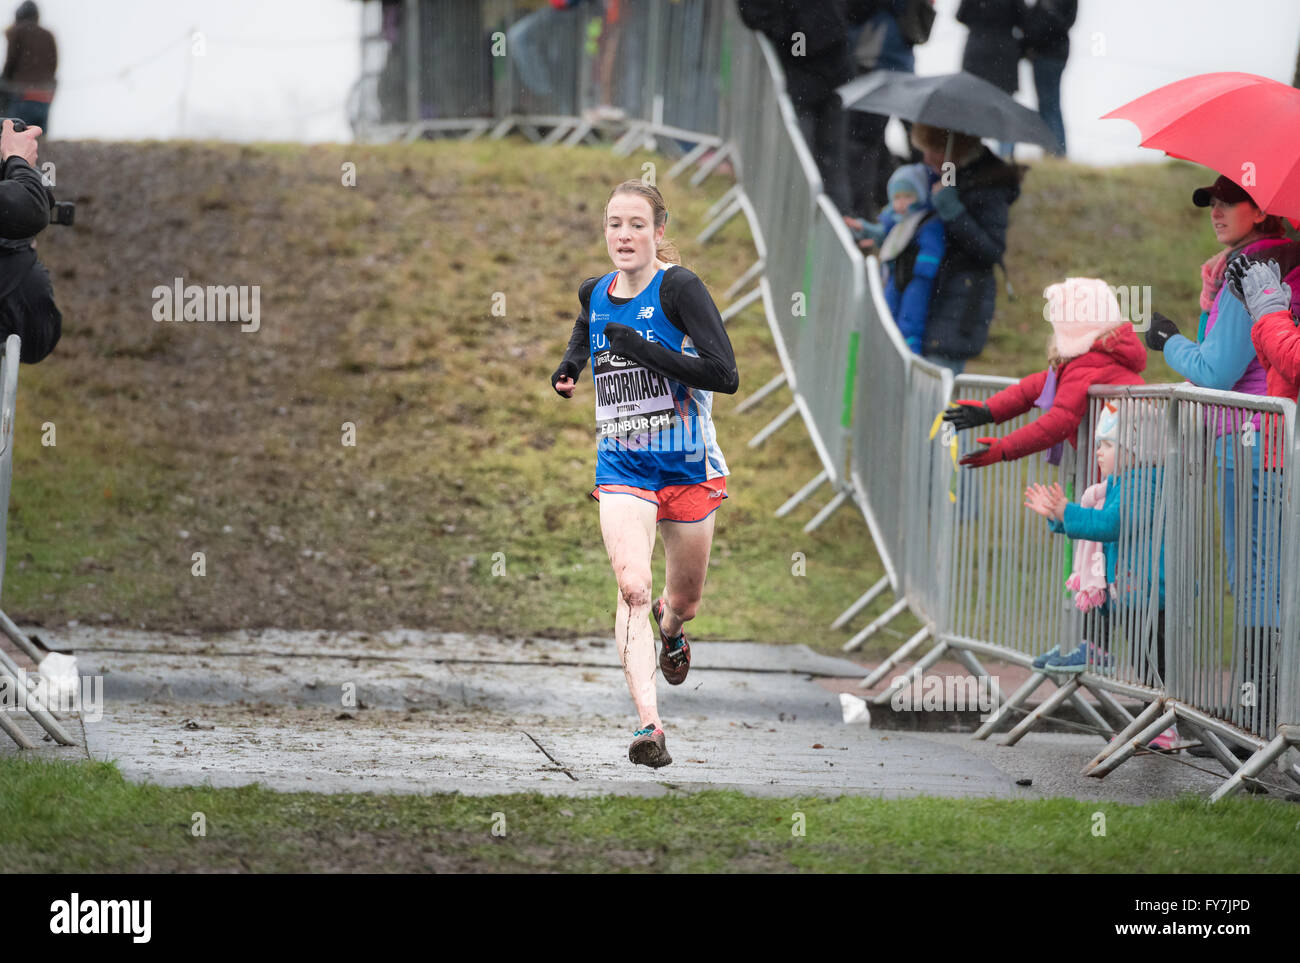 Fionnuala McCormack (nee Britton) competes in the Great Edinburgh XCountry Women's 6k. 9th January 2016. - Stock Image